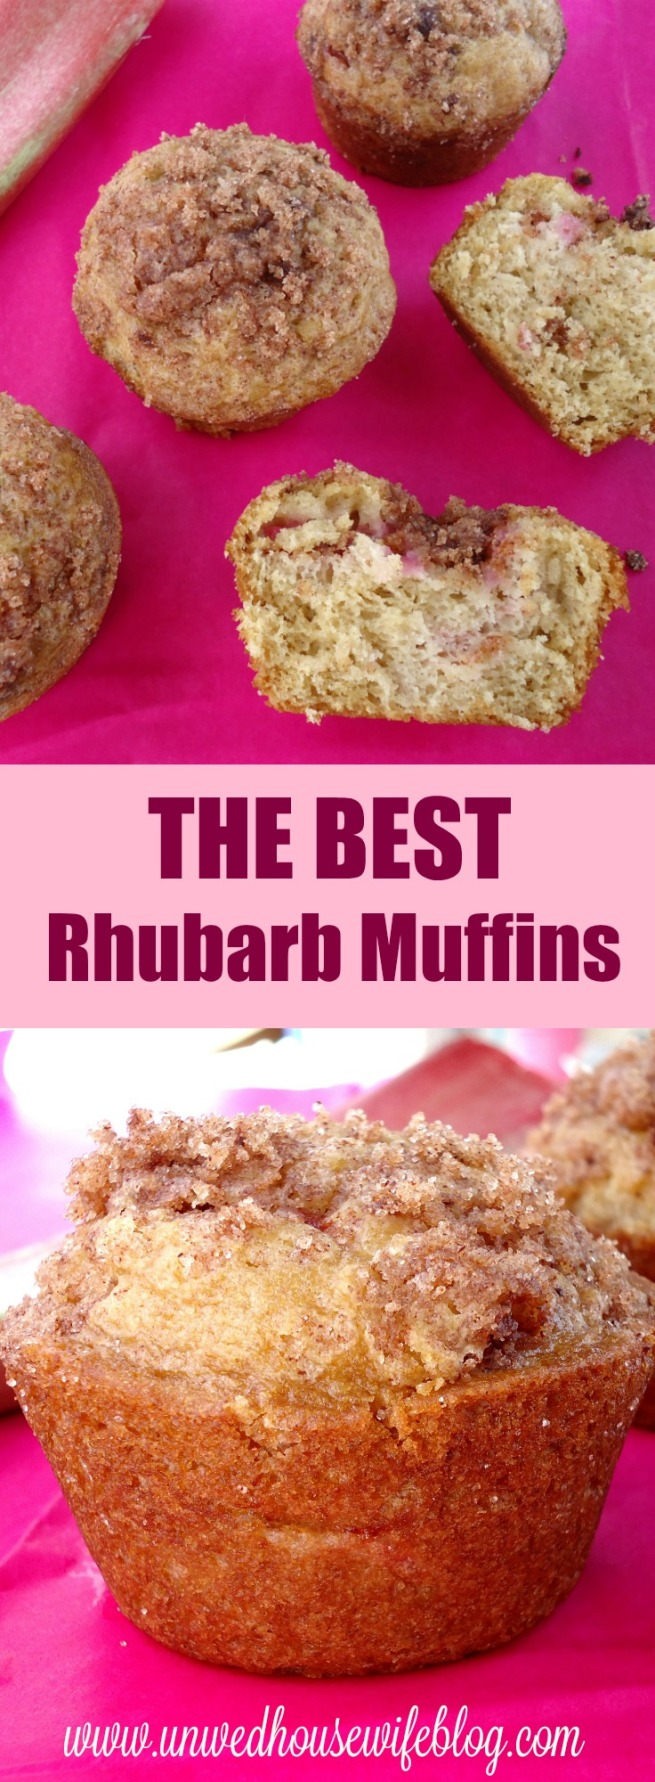 Dense, moist, bakery style rhubarb muffin recipe. THE BEST rhubarb muffins out there.